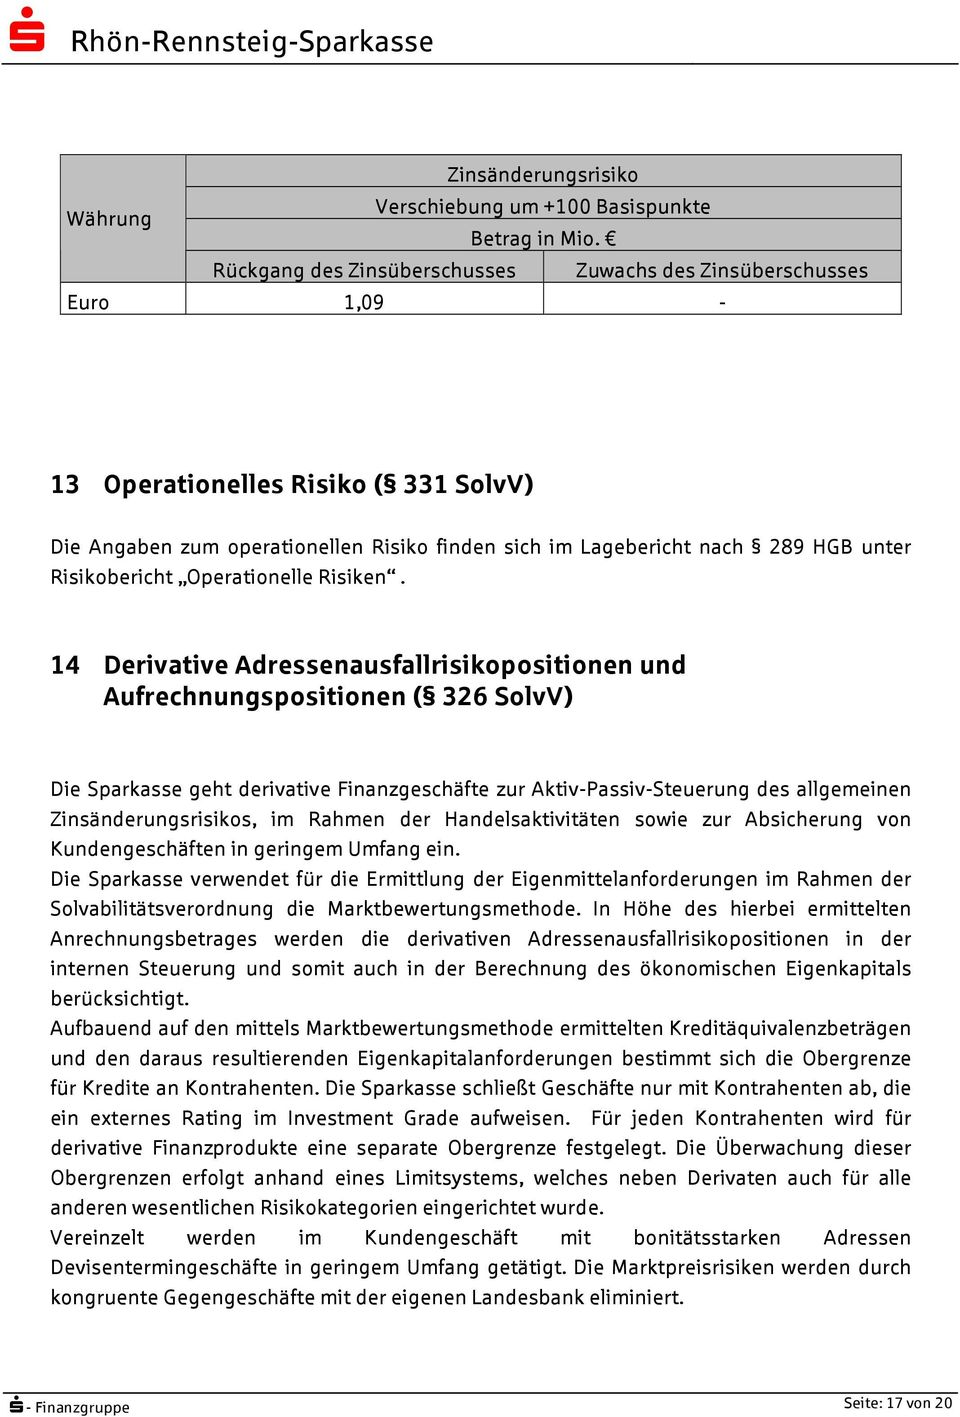 Risikobericht Operationelle Risiken.